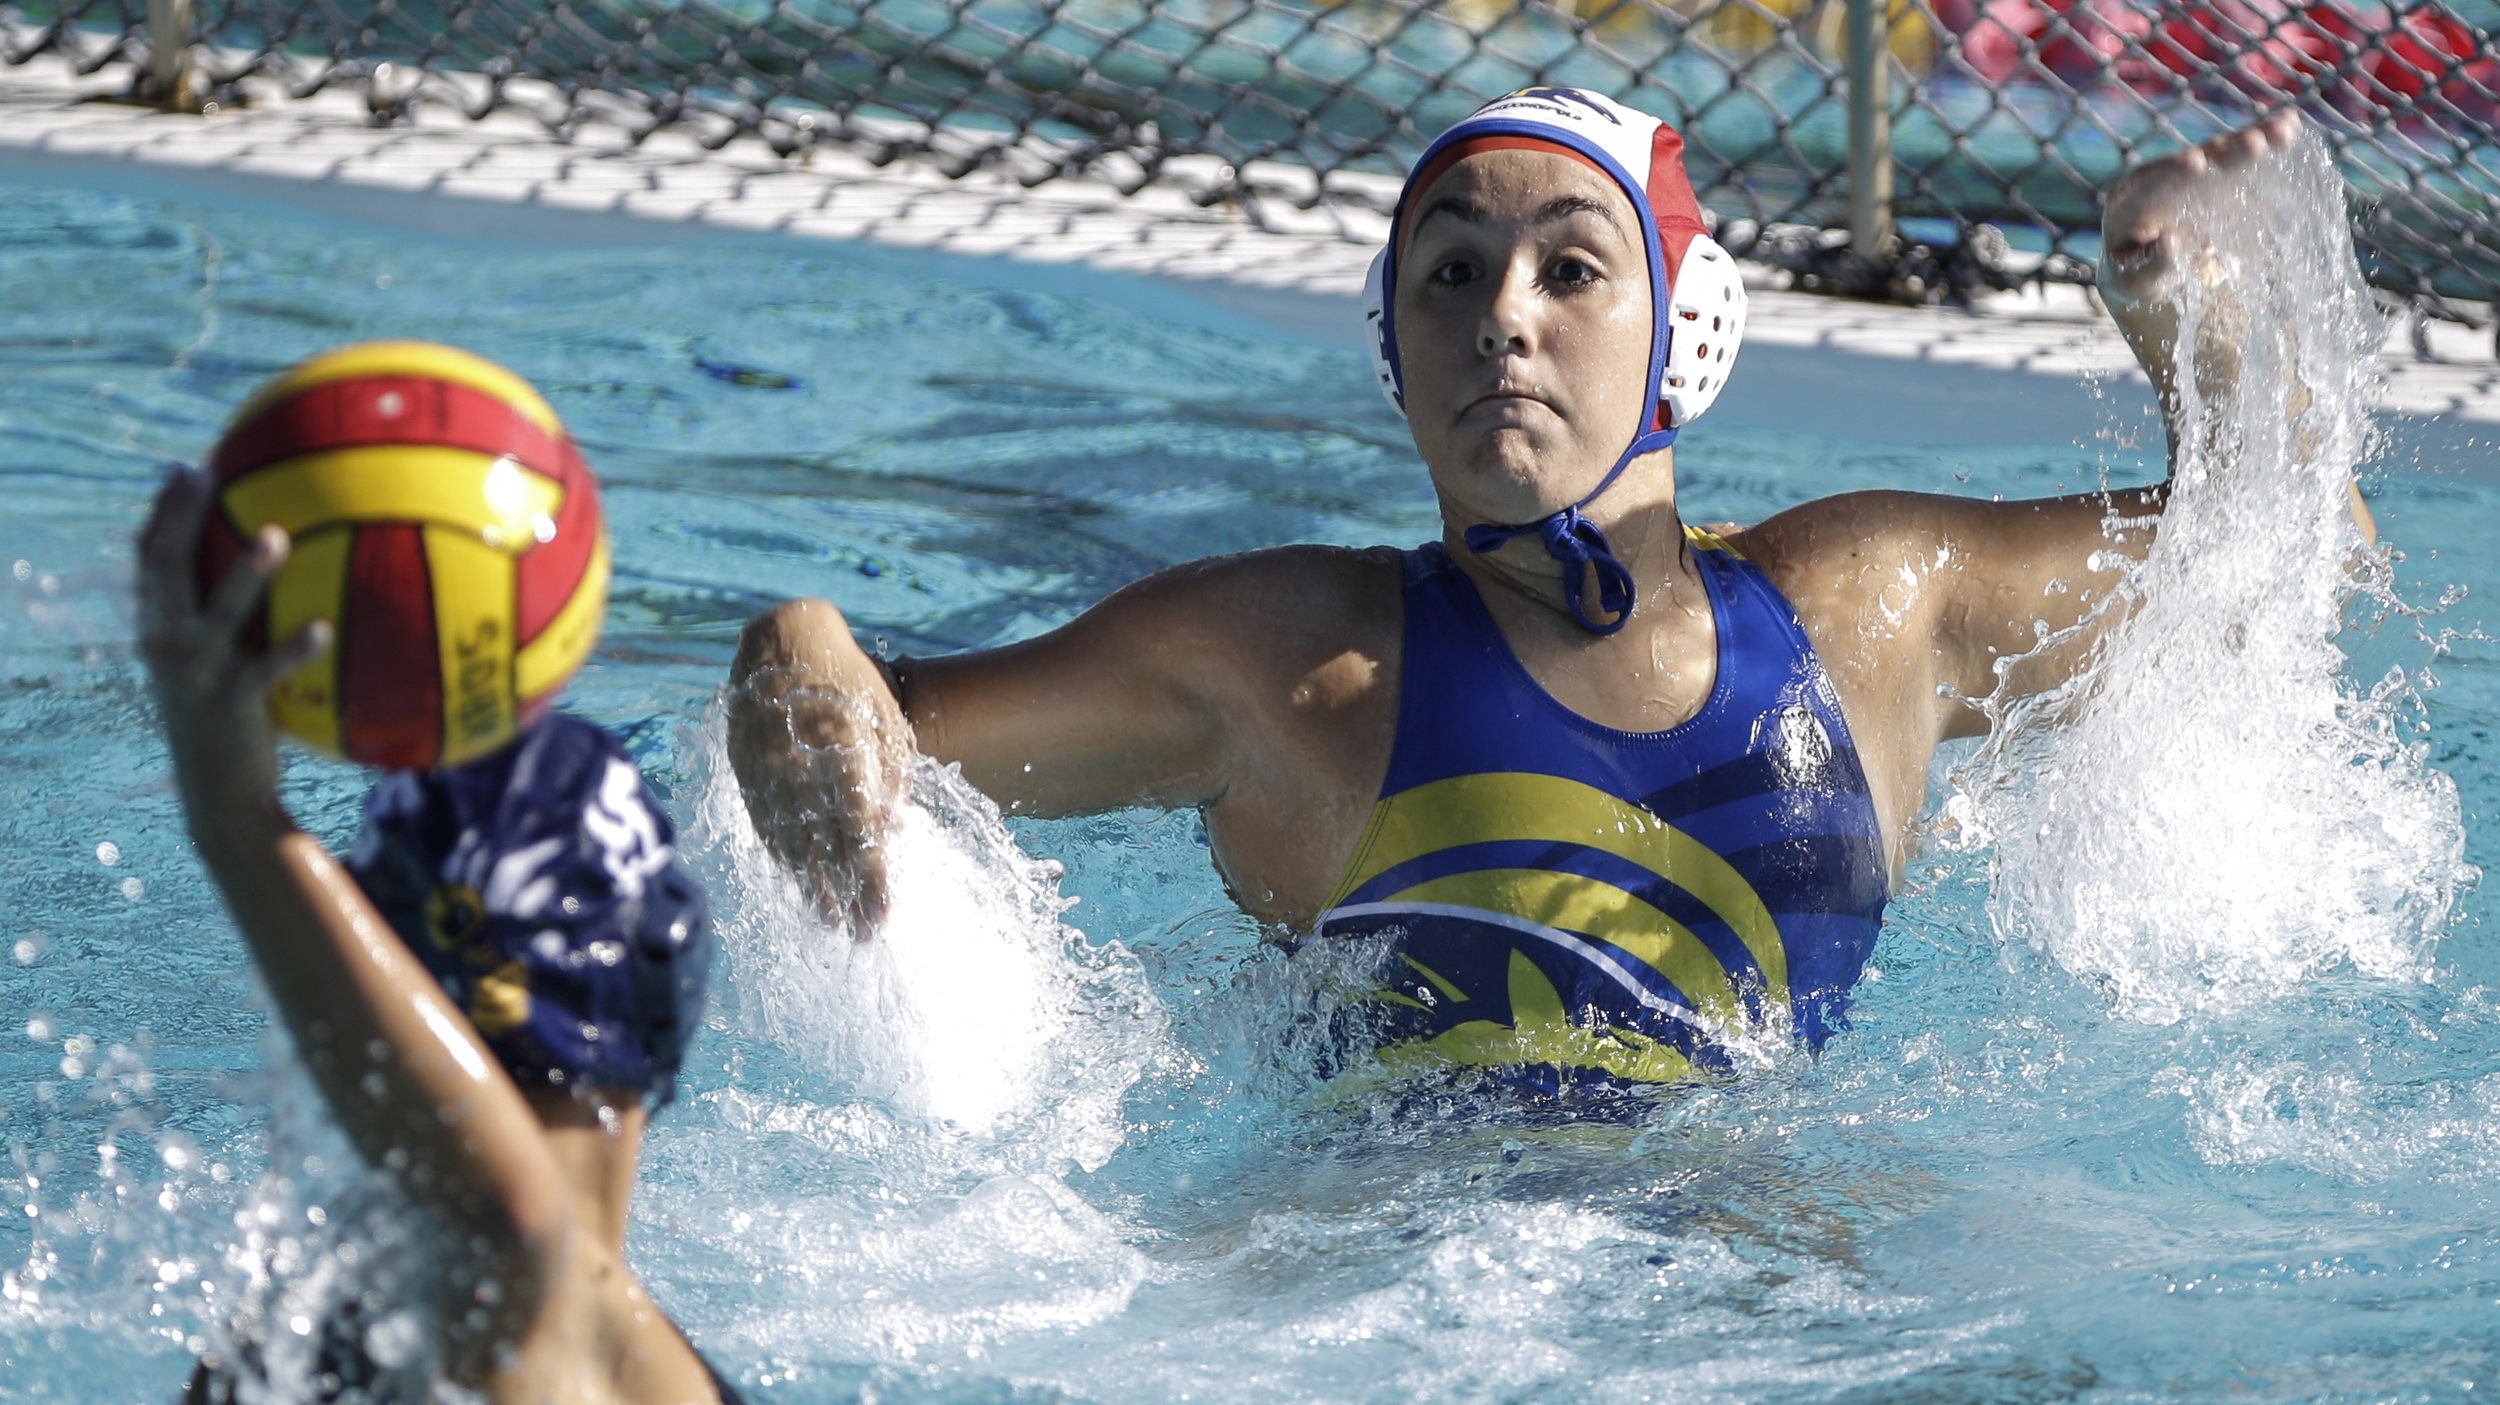 11-3-16-WaterPolo_C-465.jpg